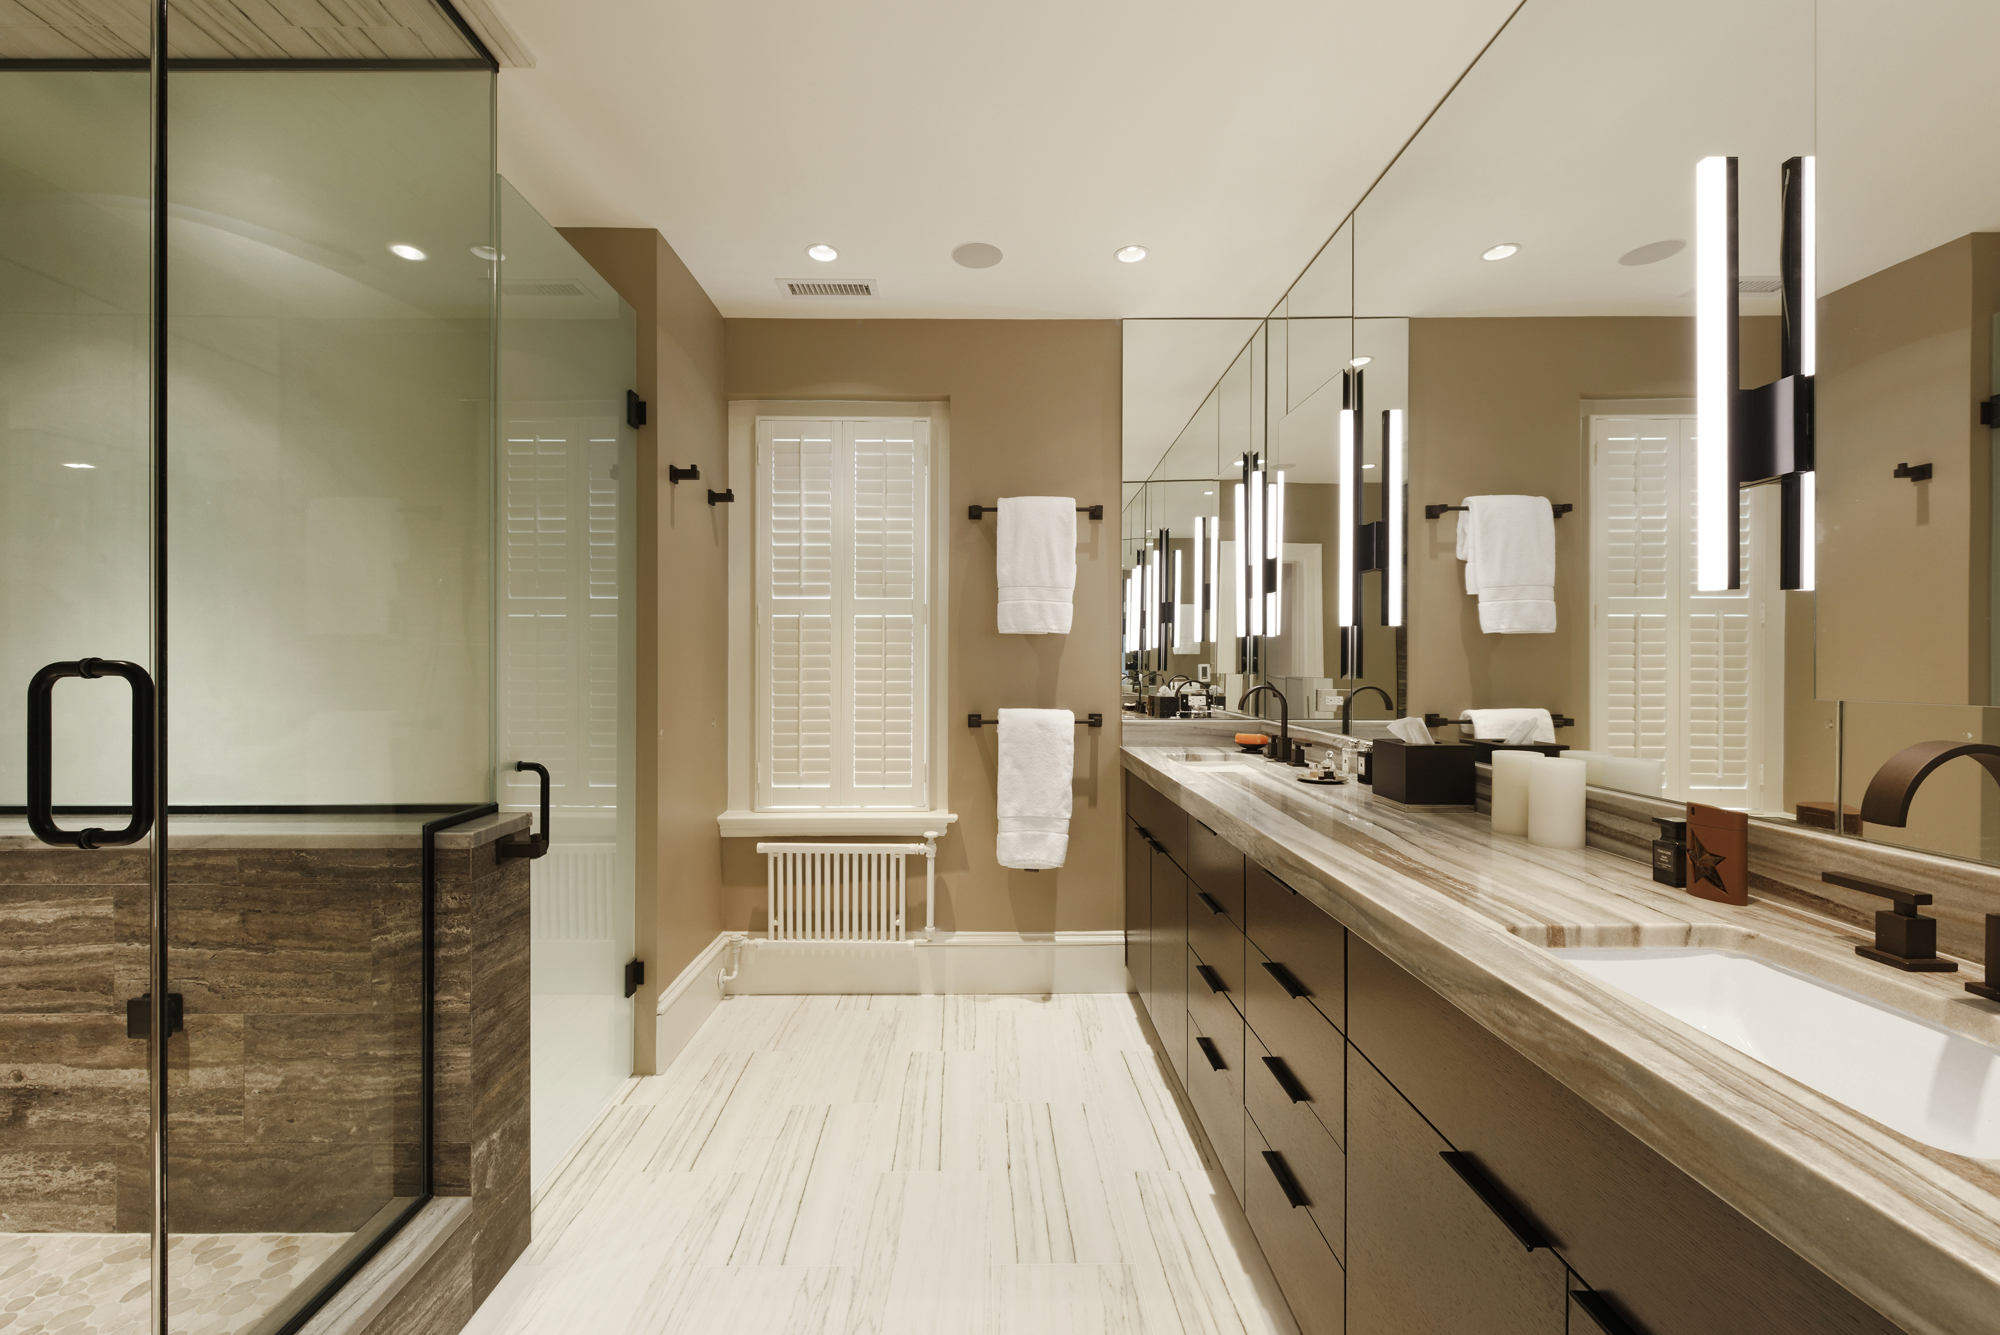 Metro DC Bathroom Renovation and Bathroom Remodeling